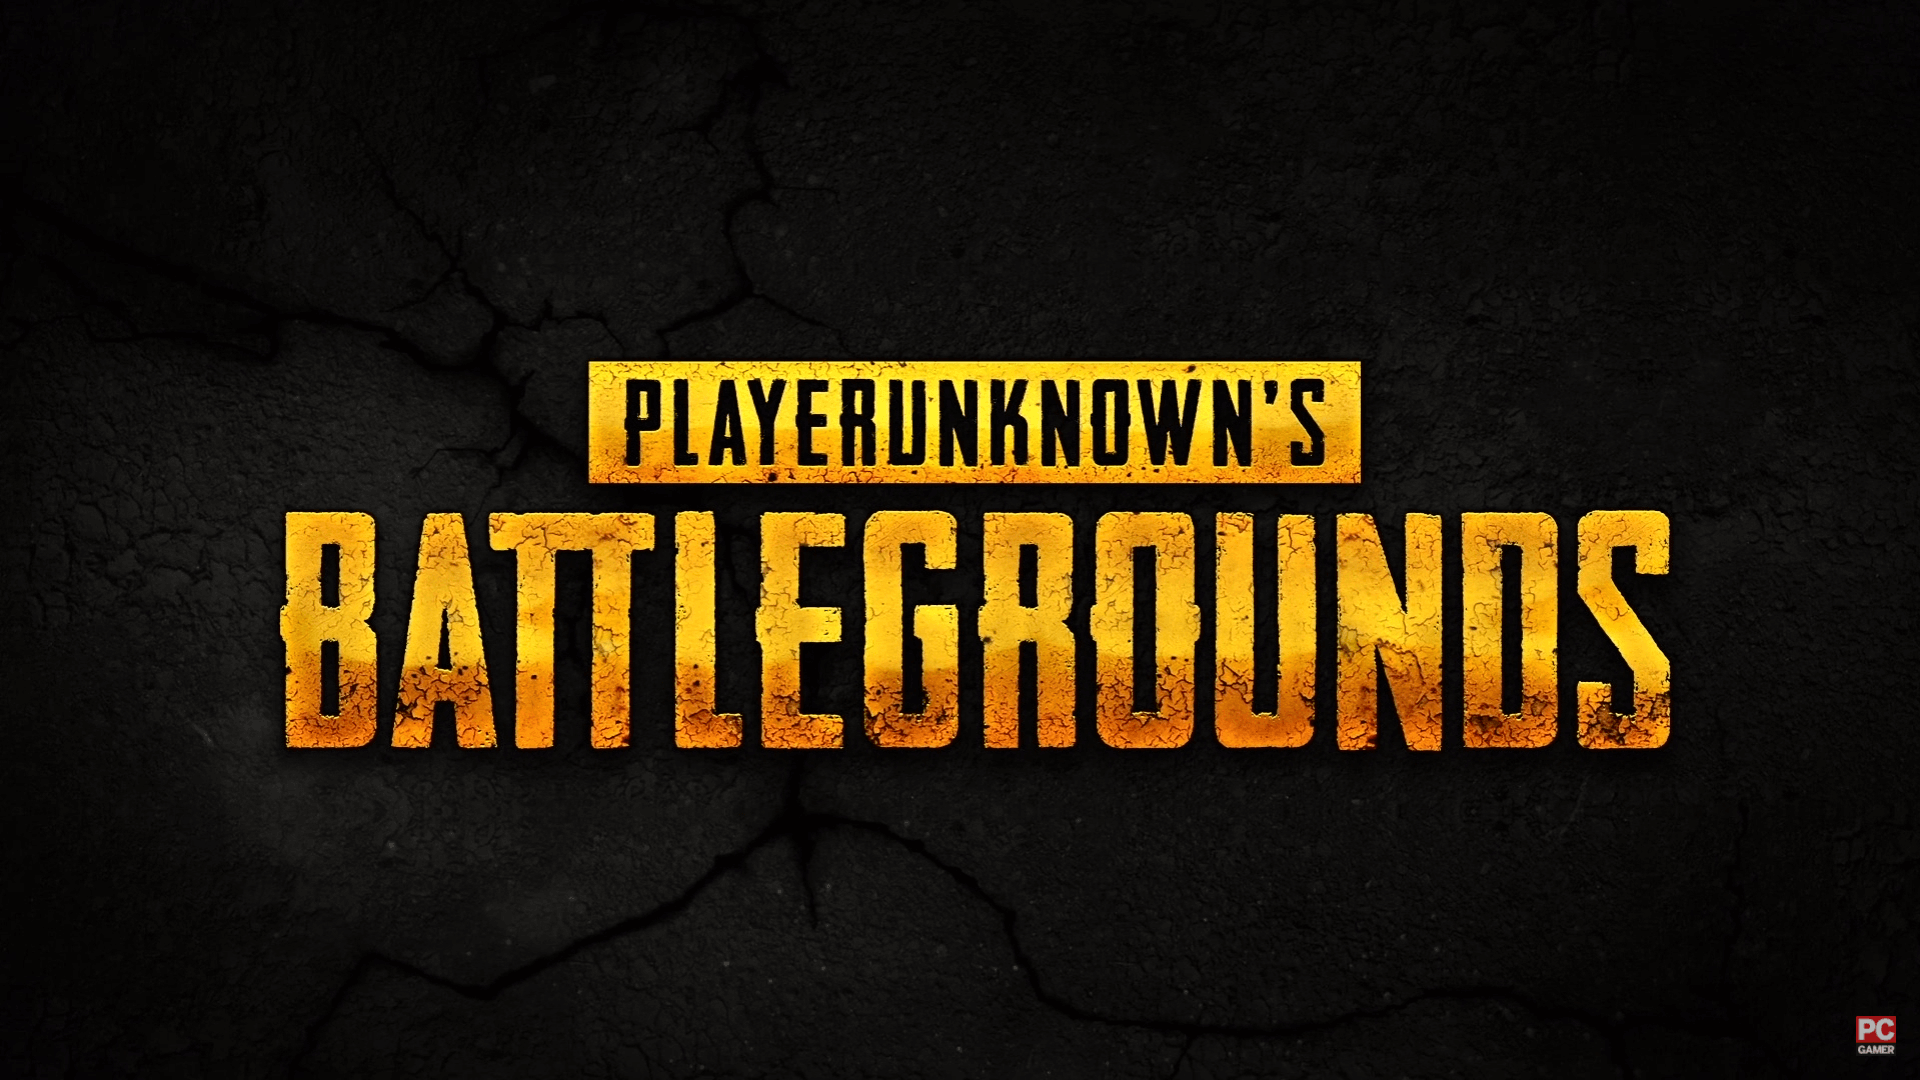 E3 2017: The Future of Playerunknown's Battlegrounds